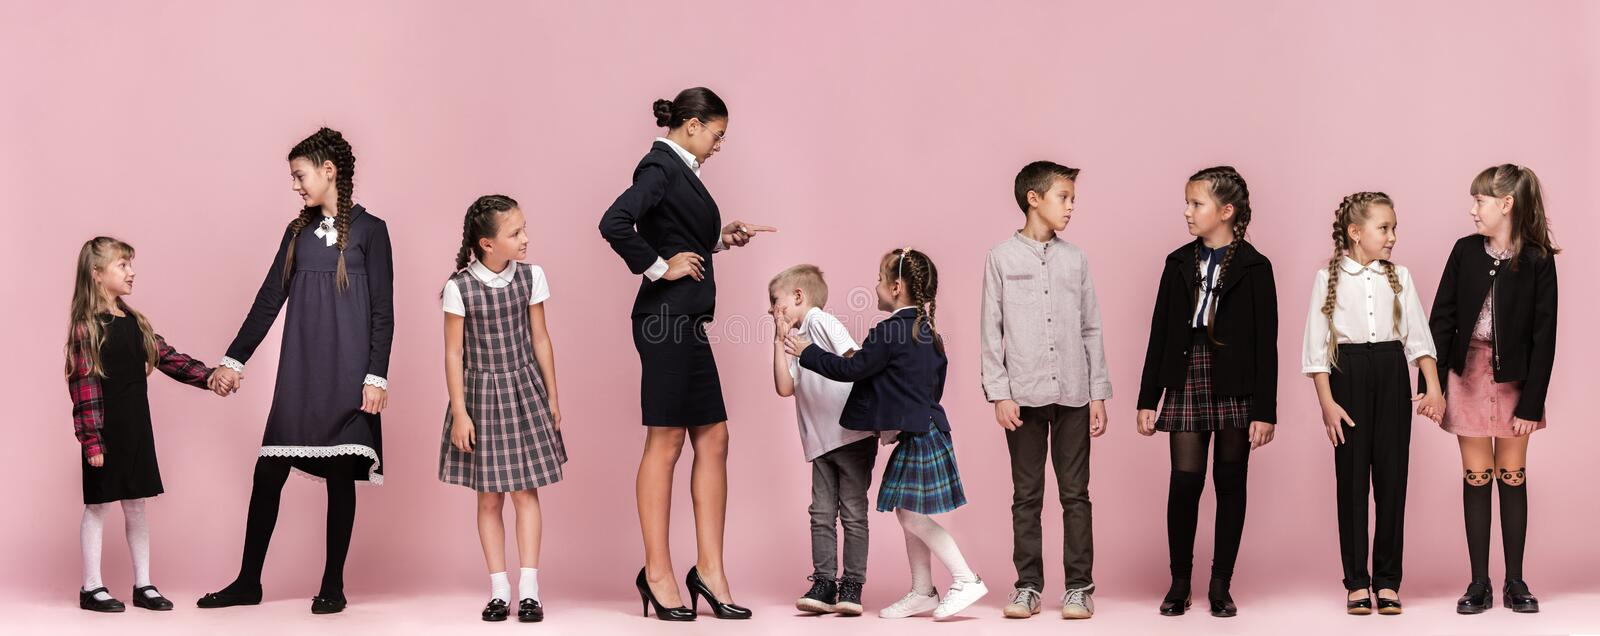 Cute stylish children on pink studio background. The beautiful teen girls and boy standing together royalty free stock photo